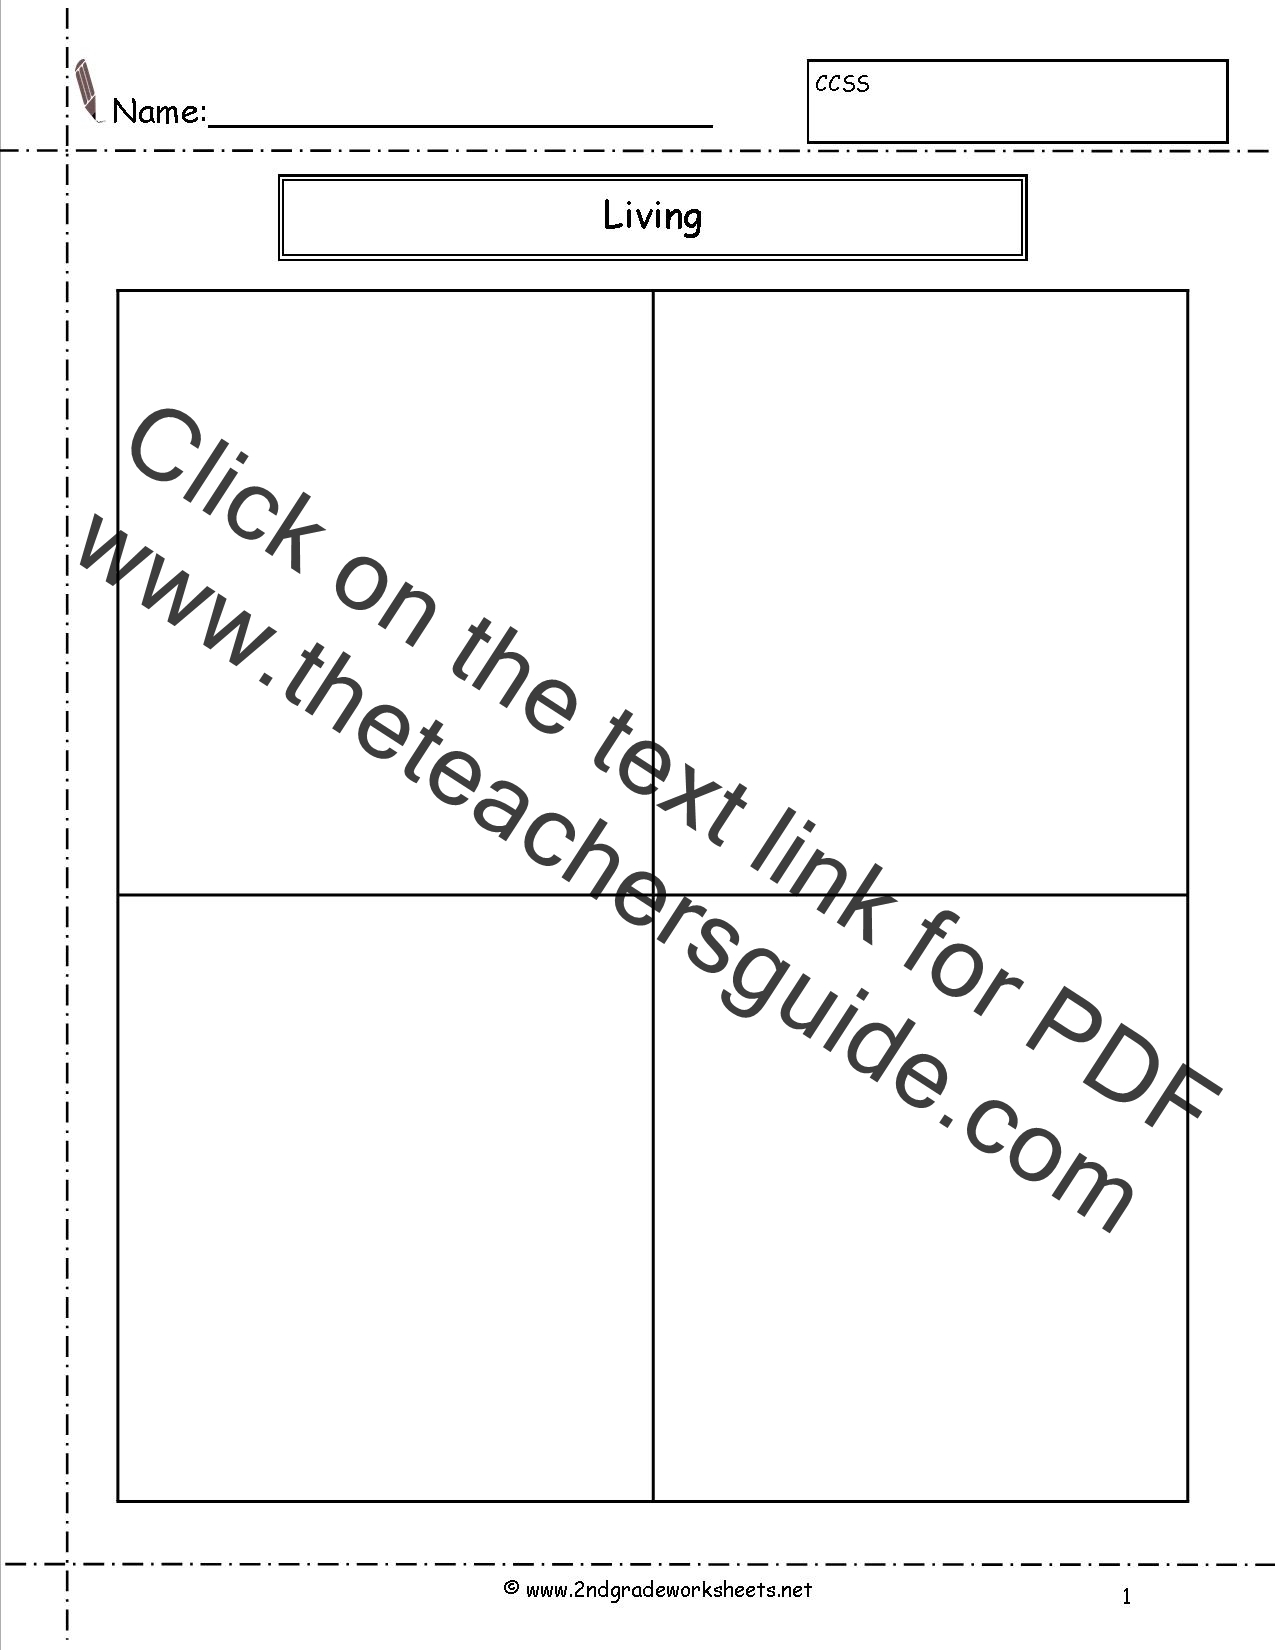 Worksheet Living And Nonliving Things Worksheet